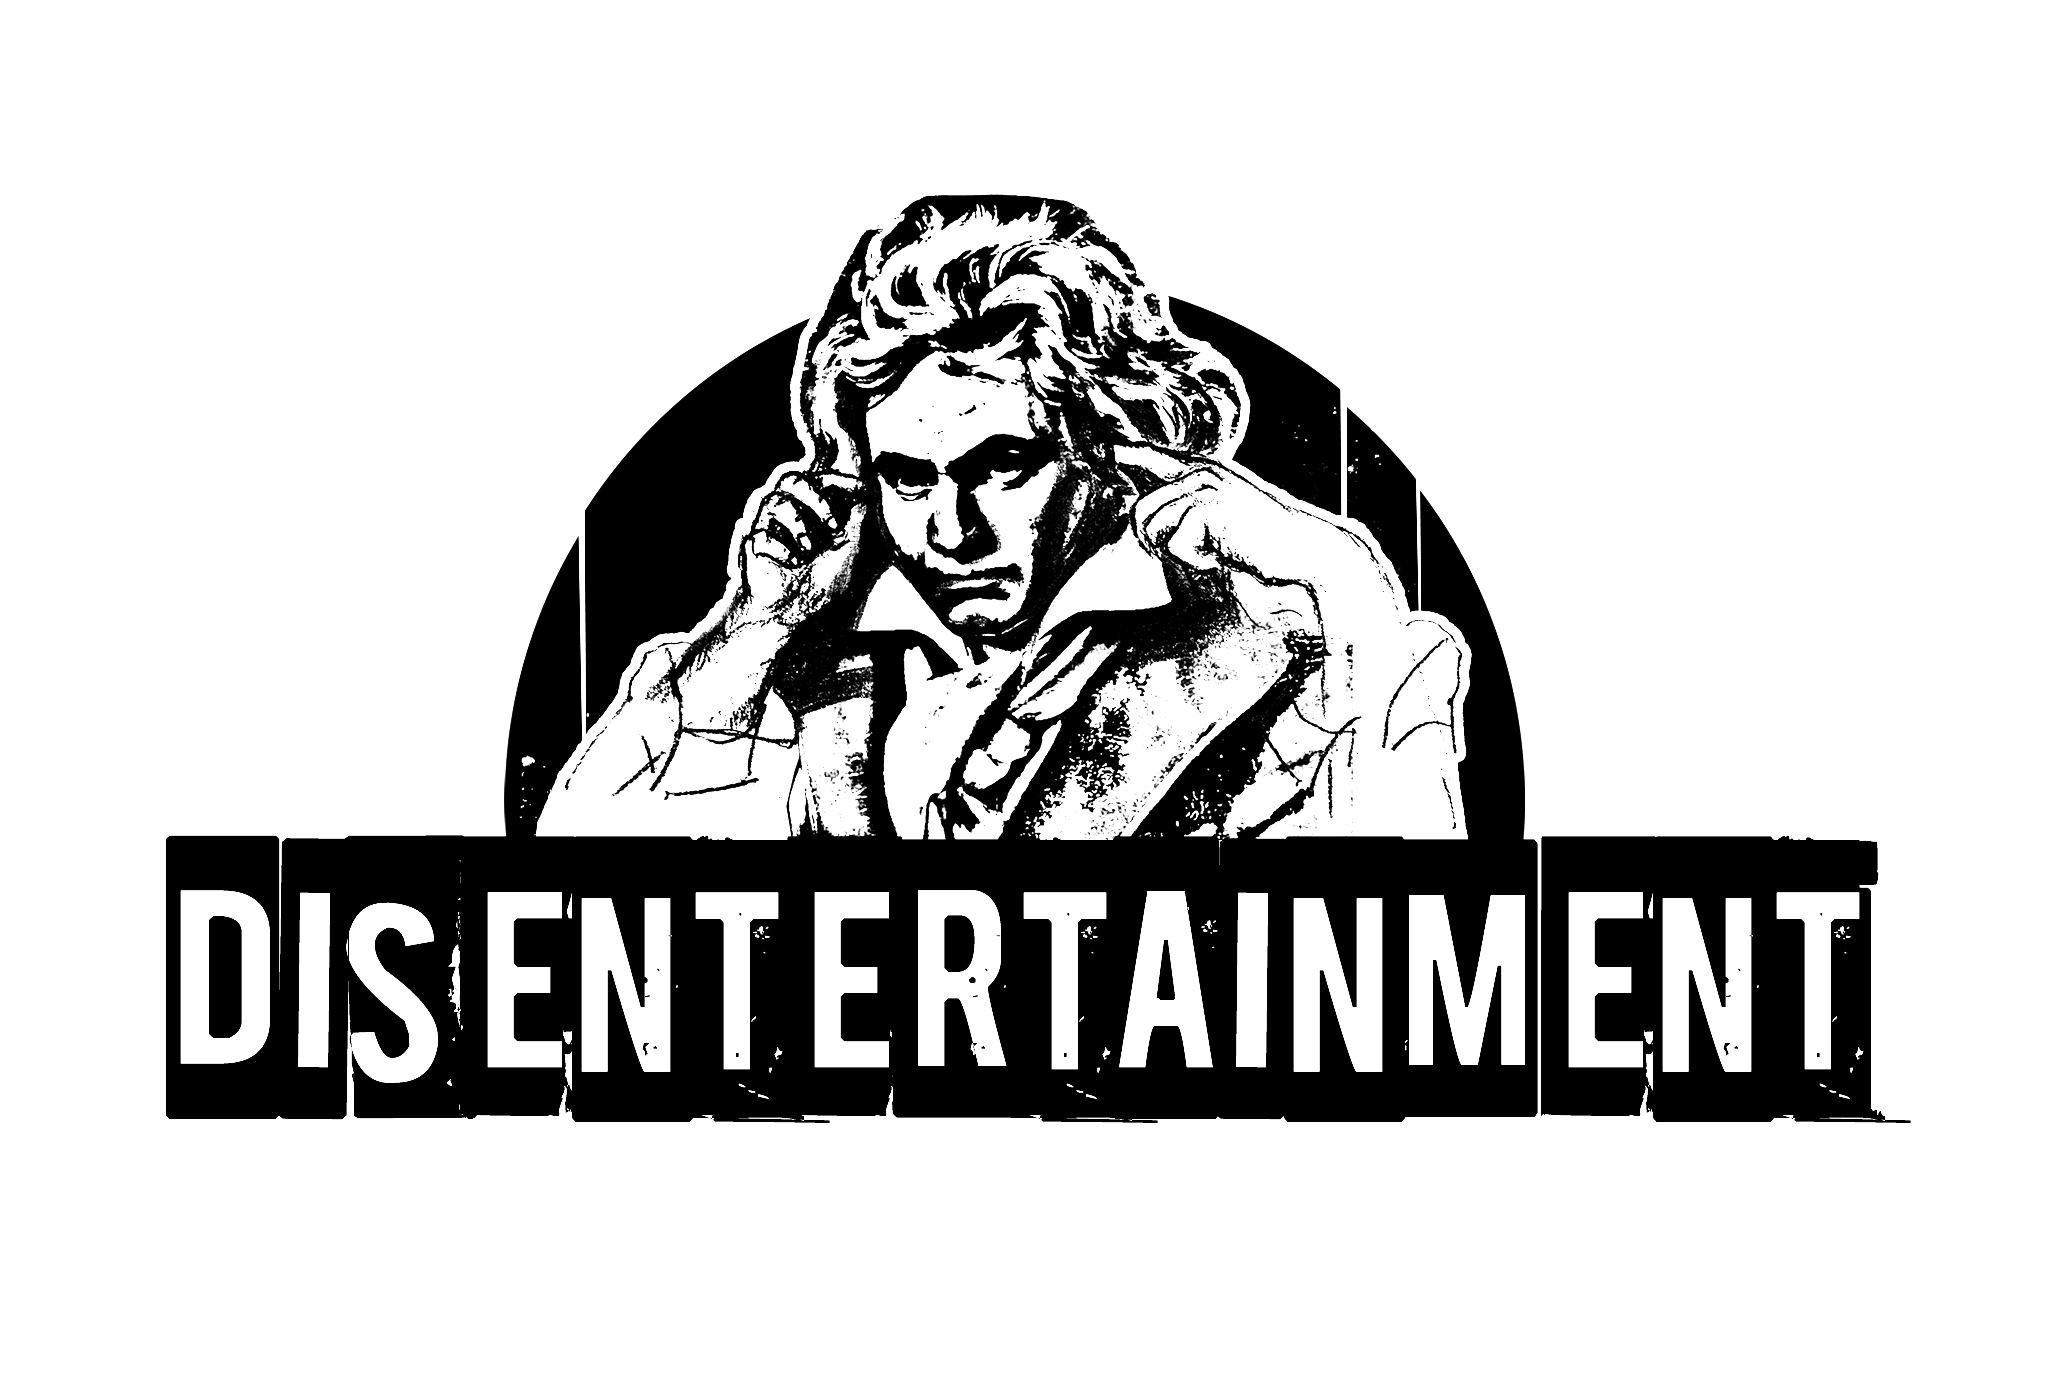 Disentertainment Logo